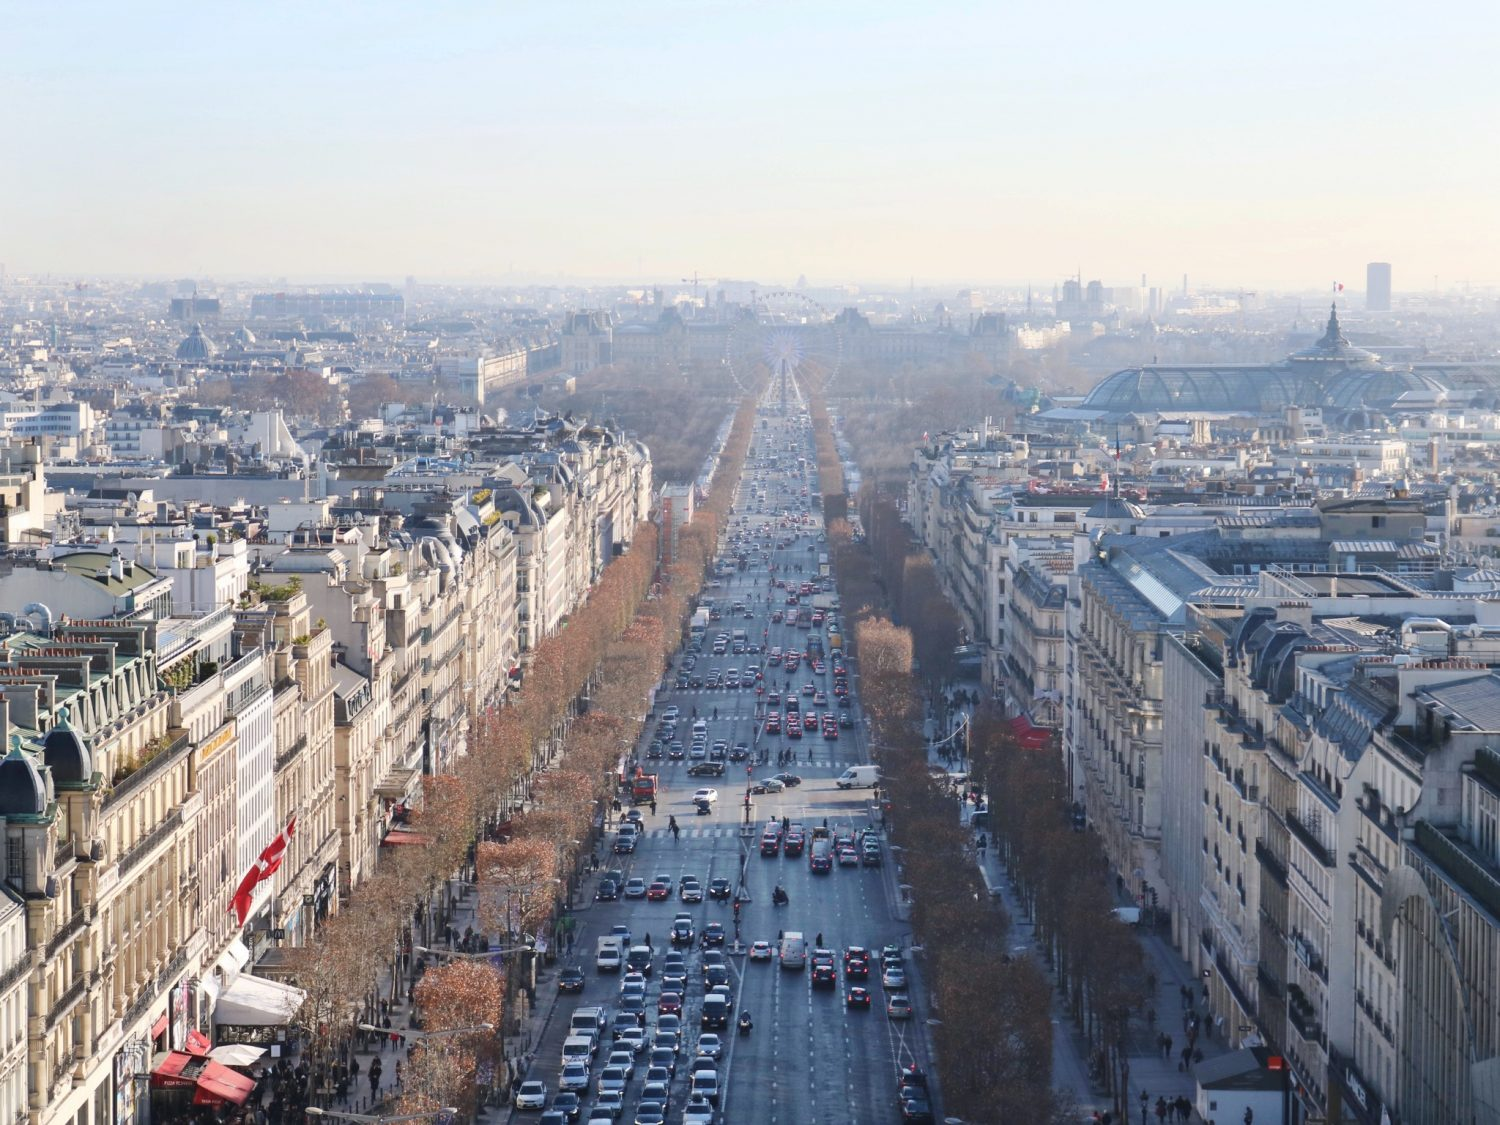 Viewing the Eiffel Tower from the top of the Arc de Triomphe